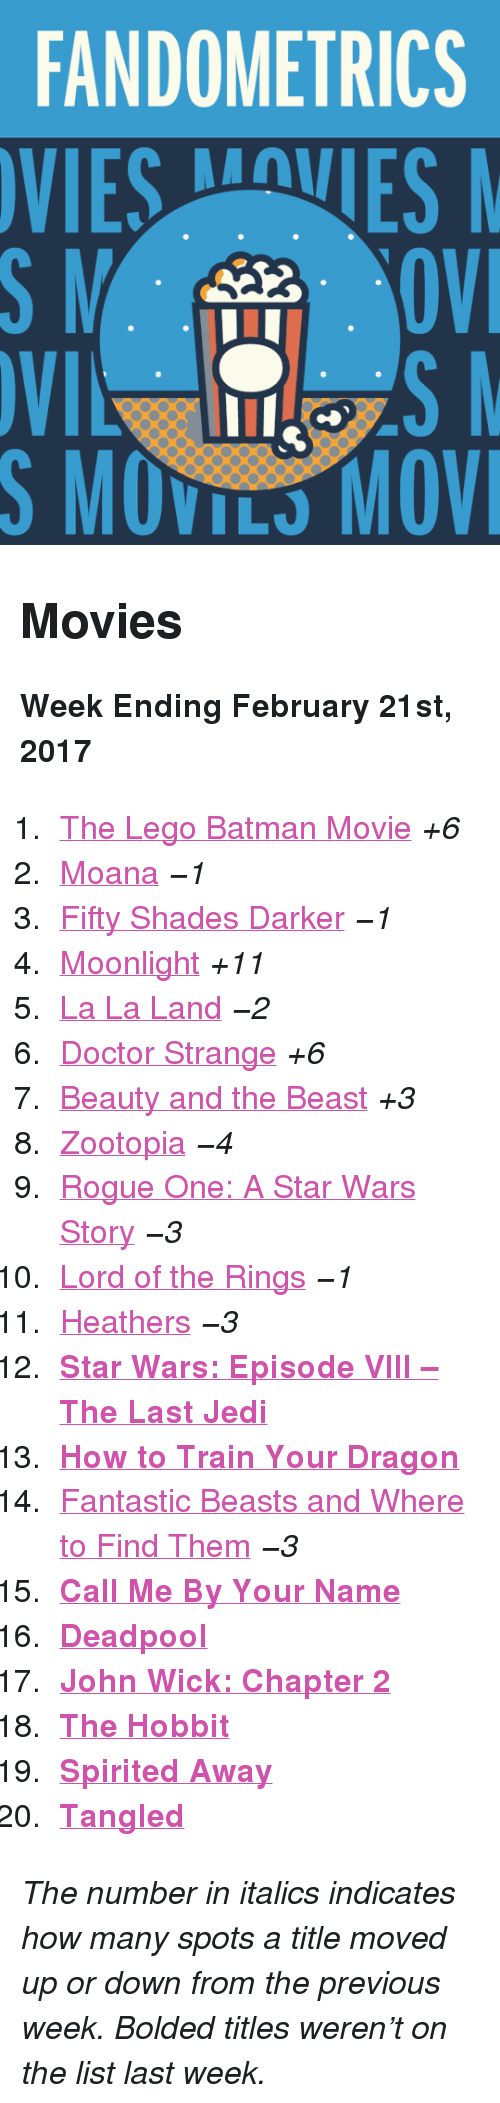 """Batman, Doctor, and Jedi: FANDOMETRICS  VIESVES  S MOVILS MOV <h2>Movies</h2><p><b>Week Ending February 21st, 2017</b></p><ol><li><a href=""""http://www.tumblr.com/search/lego%20batman"""">The Lego Batman Movie</a><i>+6</i></li>  <li><a href=""""http://www.tumblr.com/search/moana"""">Moana</a><i>−1</i></li>  <li><a href=""""http://www.tumblr.com/search/fifty%20shades%20darker"""">Fifty Shades Darker</a><i>−1</i></li>  <li><a href=""""http://www.tumblr.com/search/moonlight"""">Moonlight</a><i>+11</i></li>  <li><a href=""""http://www.tumblr.com/search/la%20la%20land"""">La La Land</a><i>−2</i></li>  <li><a href=""""http://www.tumblr.com/search/doctor%20strange"""">Doctor Strange</a><i>+6</i></li>  <li><a href=""""http://www.tumblr.com/search/beauty%20and%20the%20beast"""">Beauty and the Beast</a><i>+3</i></li>  <li><a href=""""http://www.tumblr.com/search/zootopia"""">Zootopia</a><i>−4</i></li>  <li><a href=""""http://www.tumblr.com/search/rogue%20one"""">Rogue One: A Star Wars Story</a><i>−3</i></li>  <li><a href=""""http://www.tumblr.com/search/lotr"""">Lord of the Rings</a><i>−1</i></li>  <li><a href=""""http://www.tumblr.com/search/heathers"""">Heathers</a><i>−3</i></li>  <li><a href=""""http://www.tumblr.com/search/the%20last%20jedi""""><b>Star Wars: Episode VIII – The Last Jedi</b></a></li>  <li><a href=""""http://www.tumblr.com/search/httyd""""><b>How to Train Your Dragon</b></a></li>  <li><a href=""""http://www.tumblr.com/search/fantastic%20beasts%20and%20where%20to%20find%20them"""">Fantastic Beasts and Where to Find Them</a><i>−3</i></li>  <li><a href=""""http://www.tumblr.com/search/call%20me%20by%20your%20name""""><b>Call Me By Your Name</b></a></li>  <li><a href=""""http://www.tumblr.com/search/deadpool""""><b>Deadpool</b></a></li>  <li><a href=""""http://www.tumblr.com/search/john%20wick""""><b>John Wick: Chapter 2</b></a></li>  <li><a href=""""http://www.tumblr.com/search/the%20hobbit""""><b>The Hobbit</b></a></li>  <li><a href=""""http://www.tumblr.com/search/spirited%20away""""><b>Spirited Away</b></a></li>  <li><a href=""""http://www.tumblr.com/search/tangled""""><b>T"""